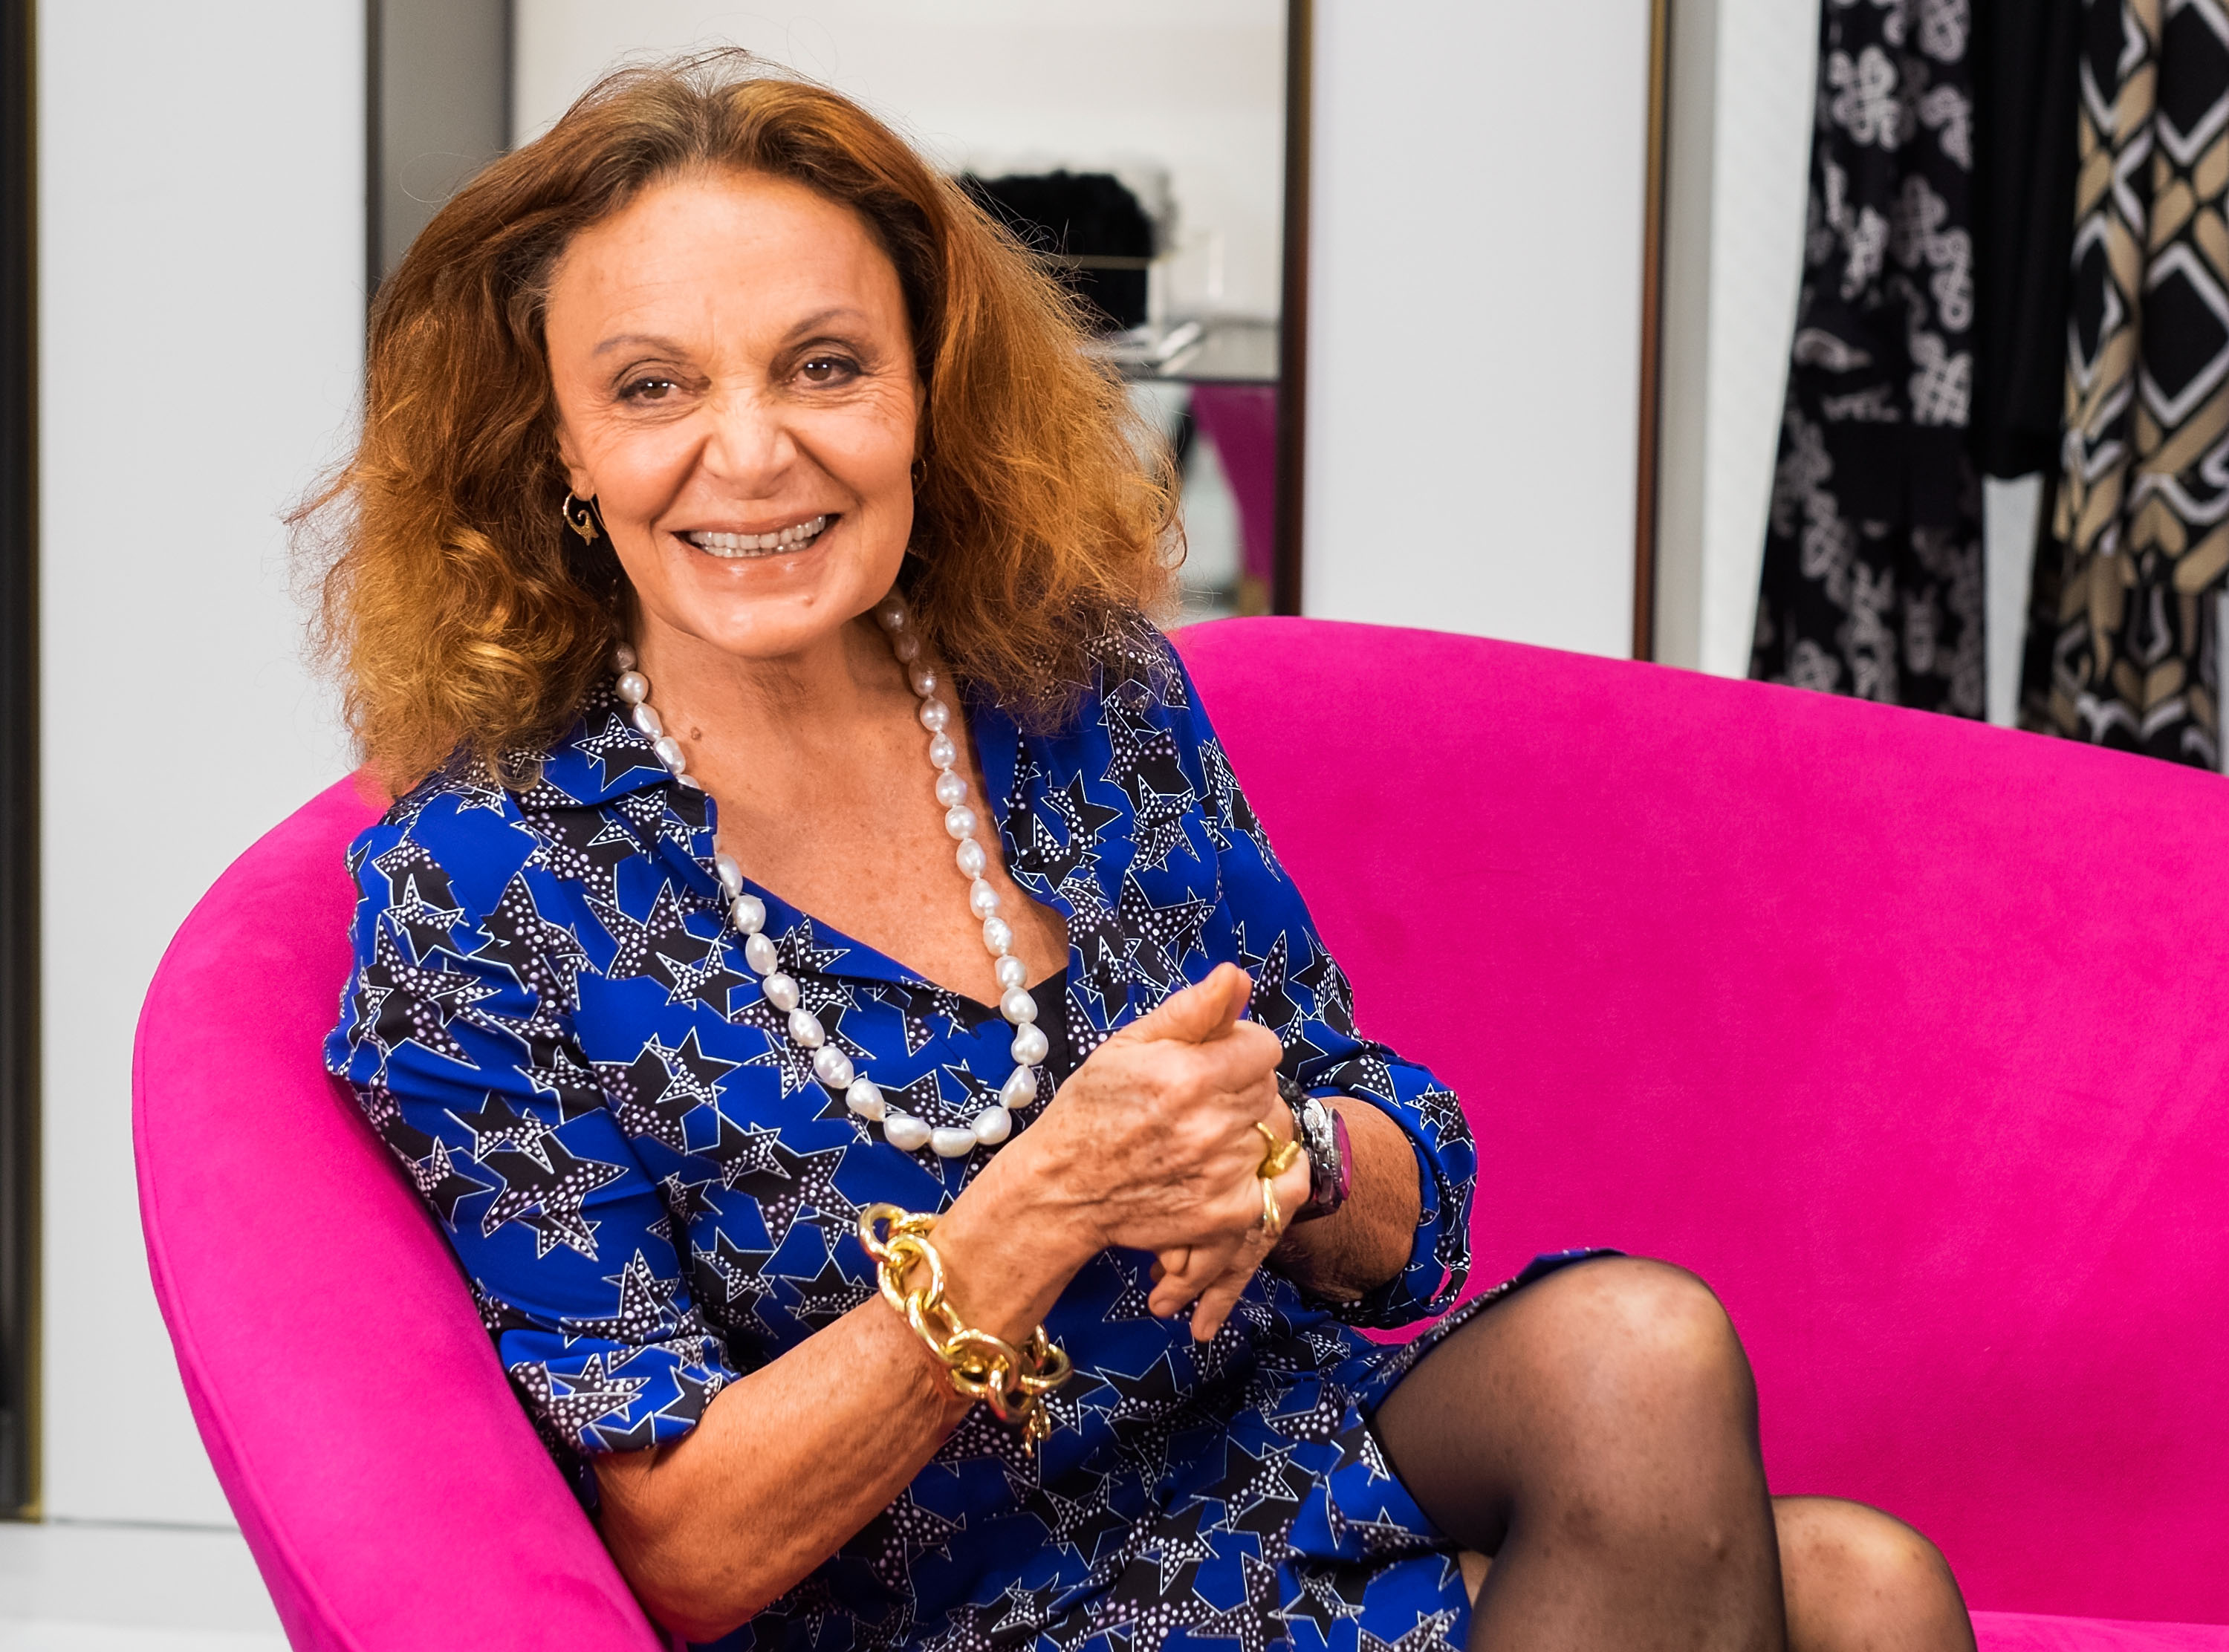 To acquire Dvf river hudson island pictures trends